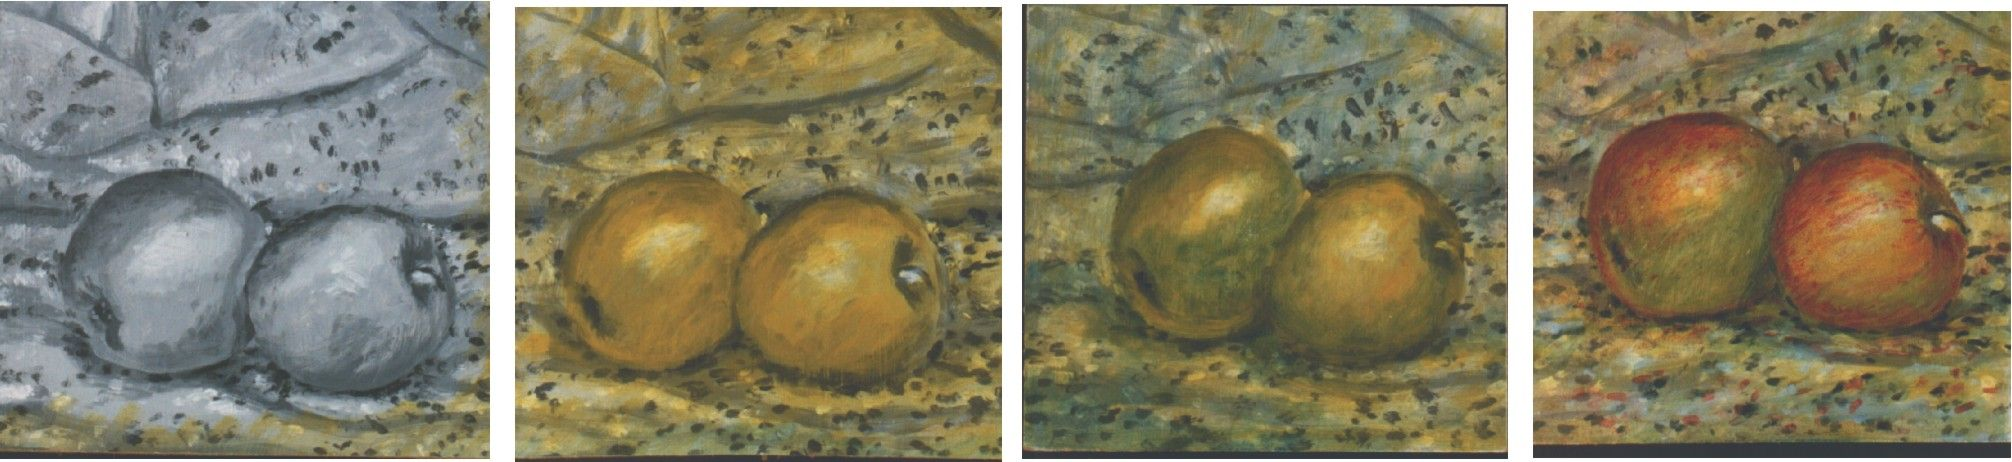 colour glazing over black and white tones - value painting